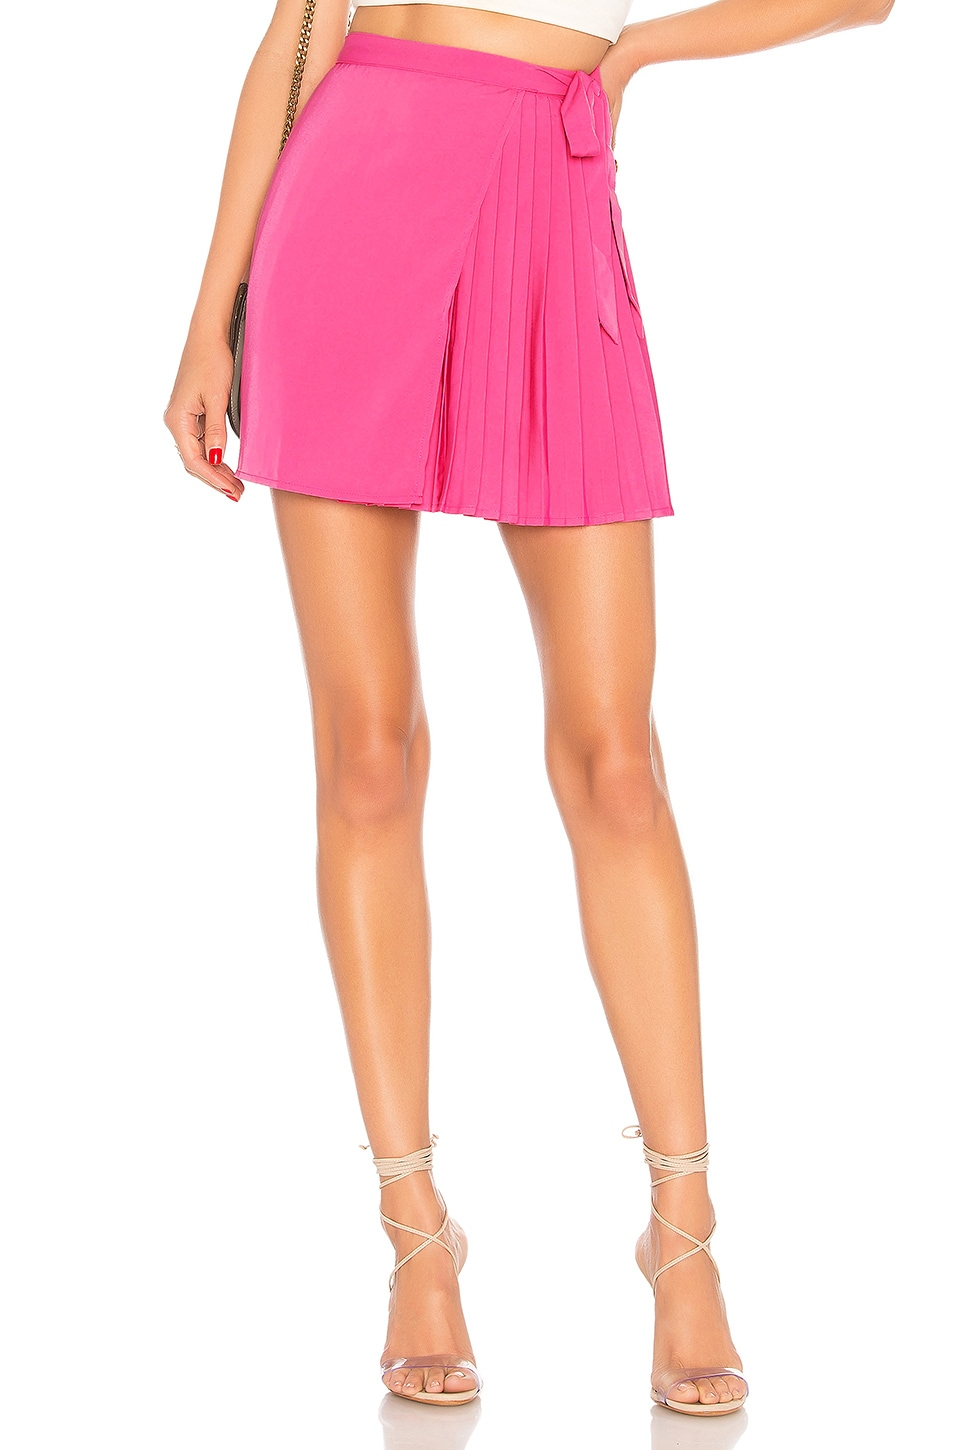 About Us Briana Pleated Wrap Skirt in Pink